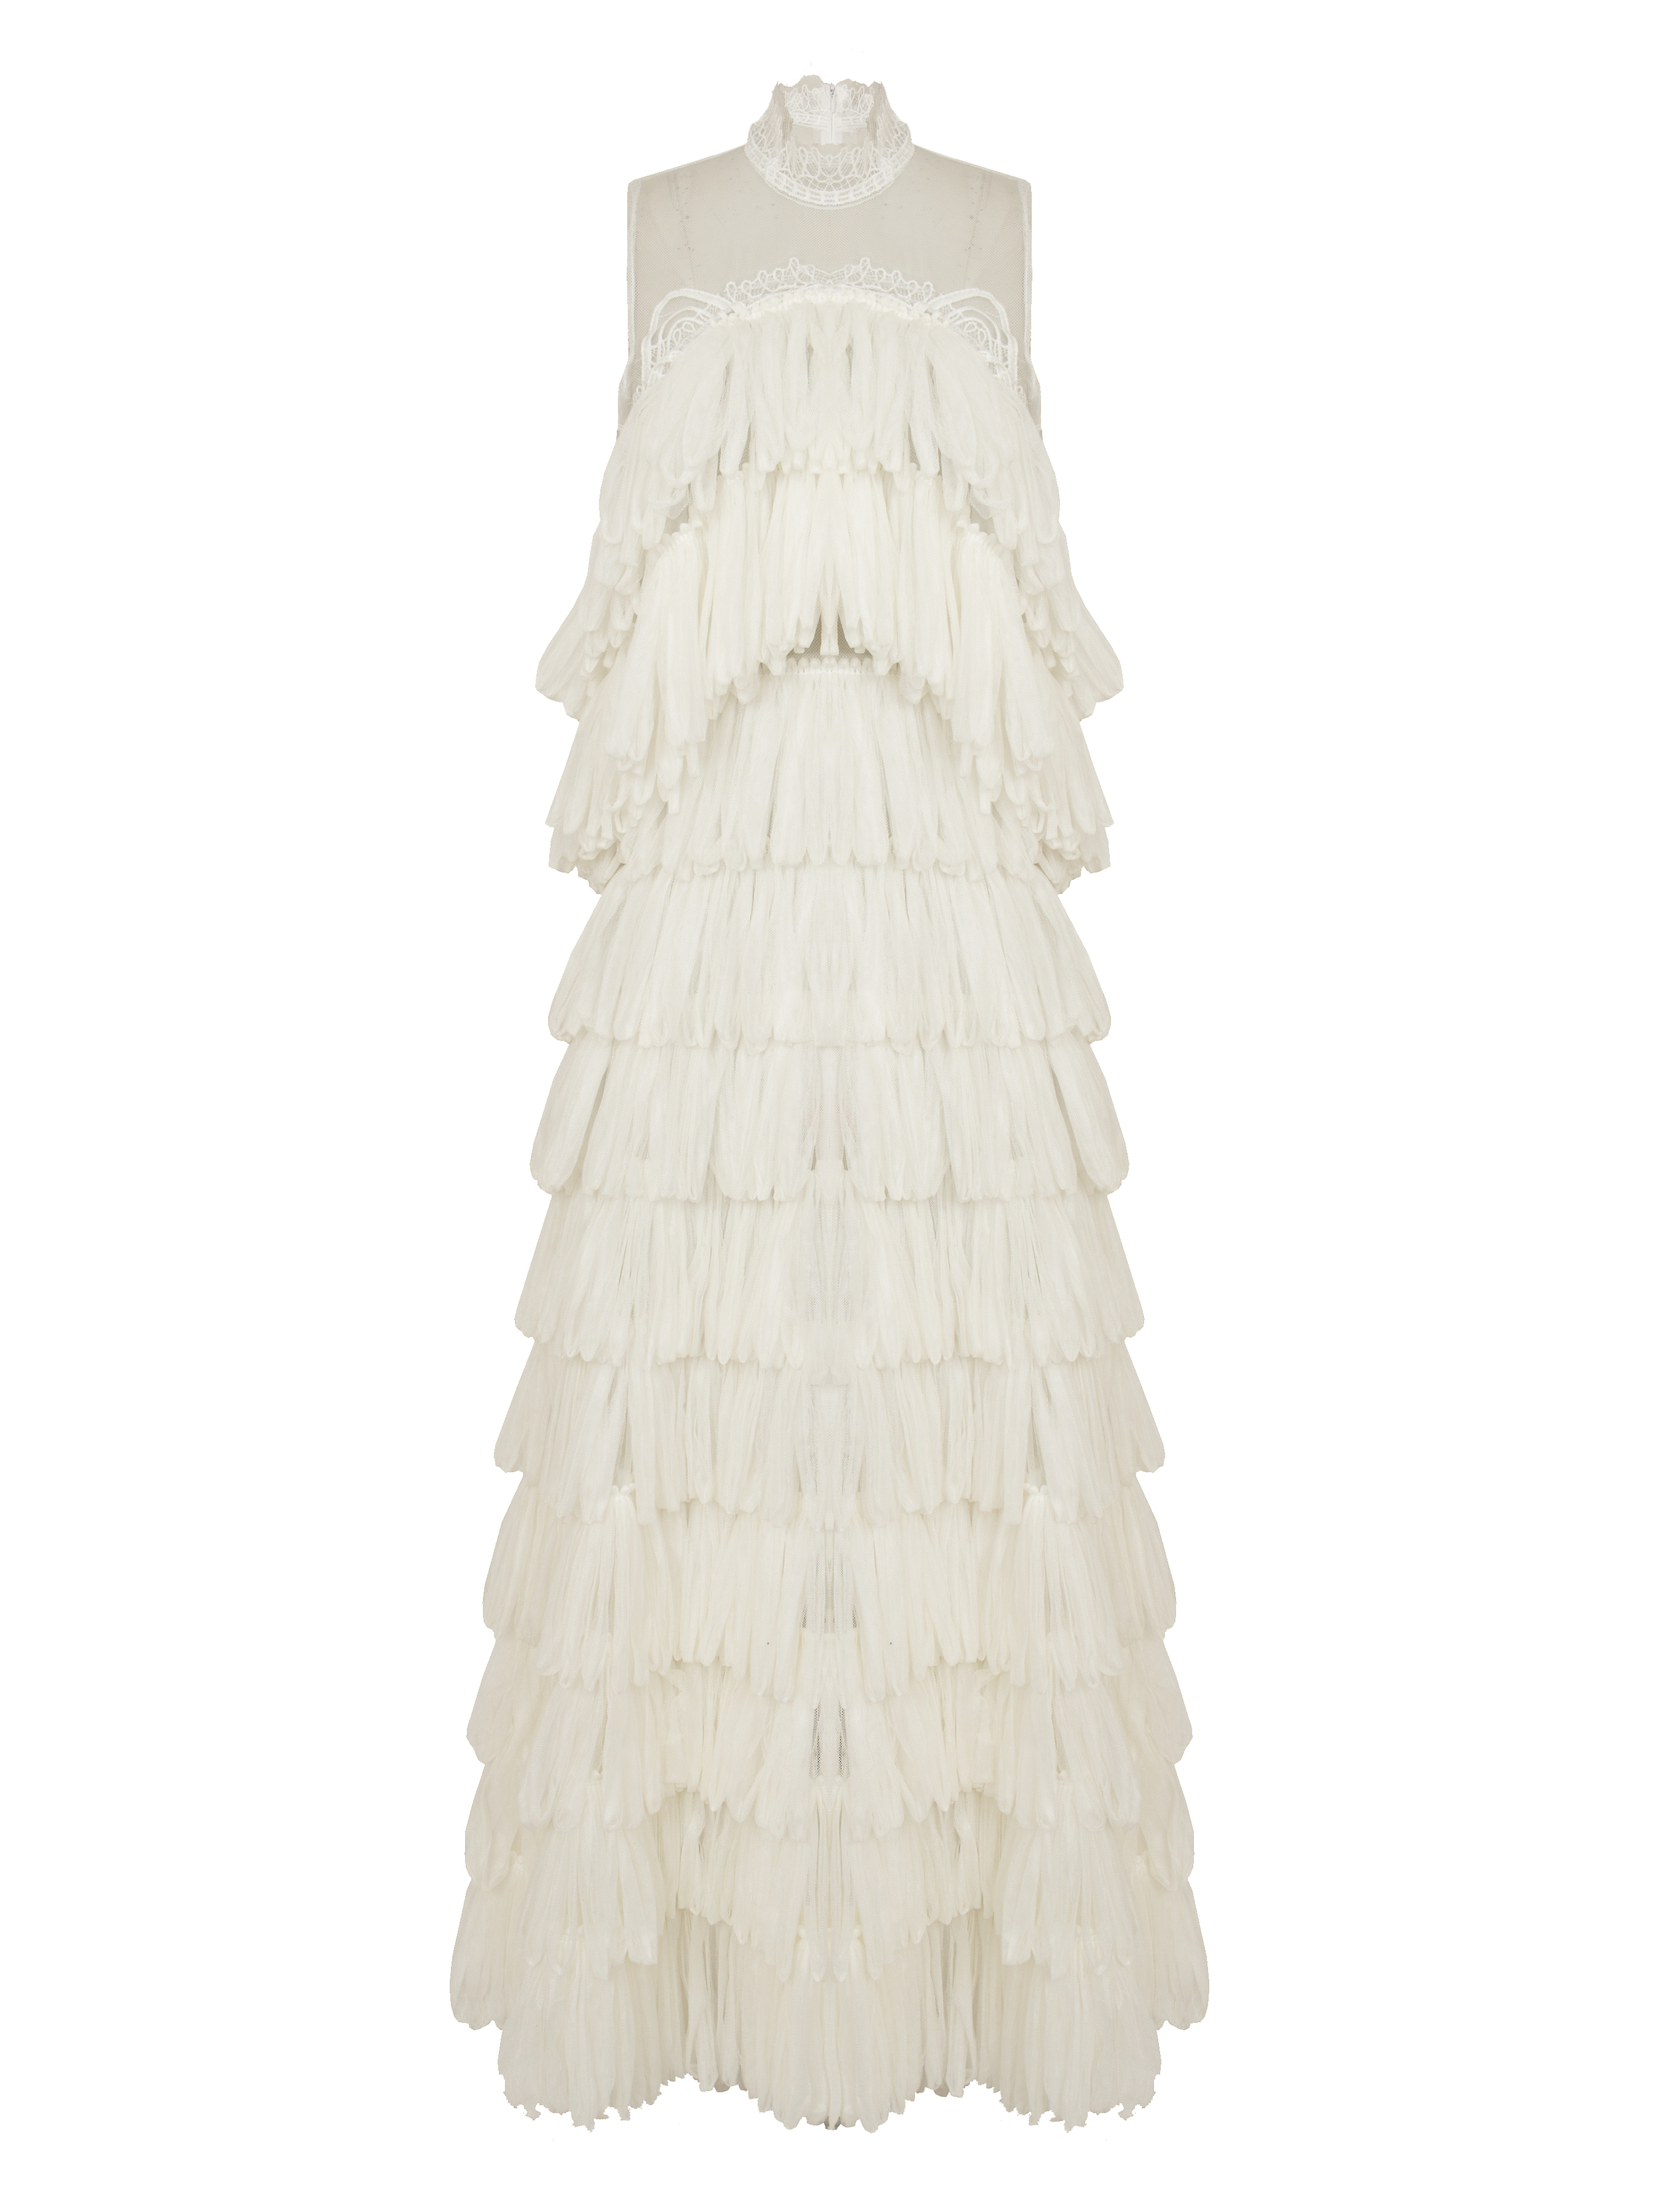 P1579-M, Layered Loop Tulle Gown, Ivory.jpg